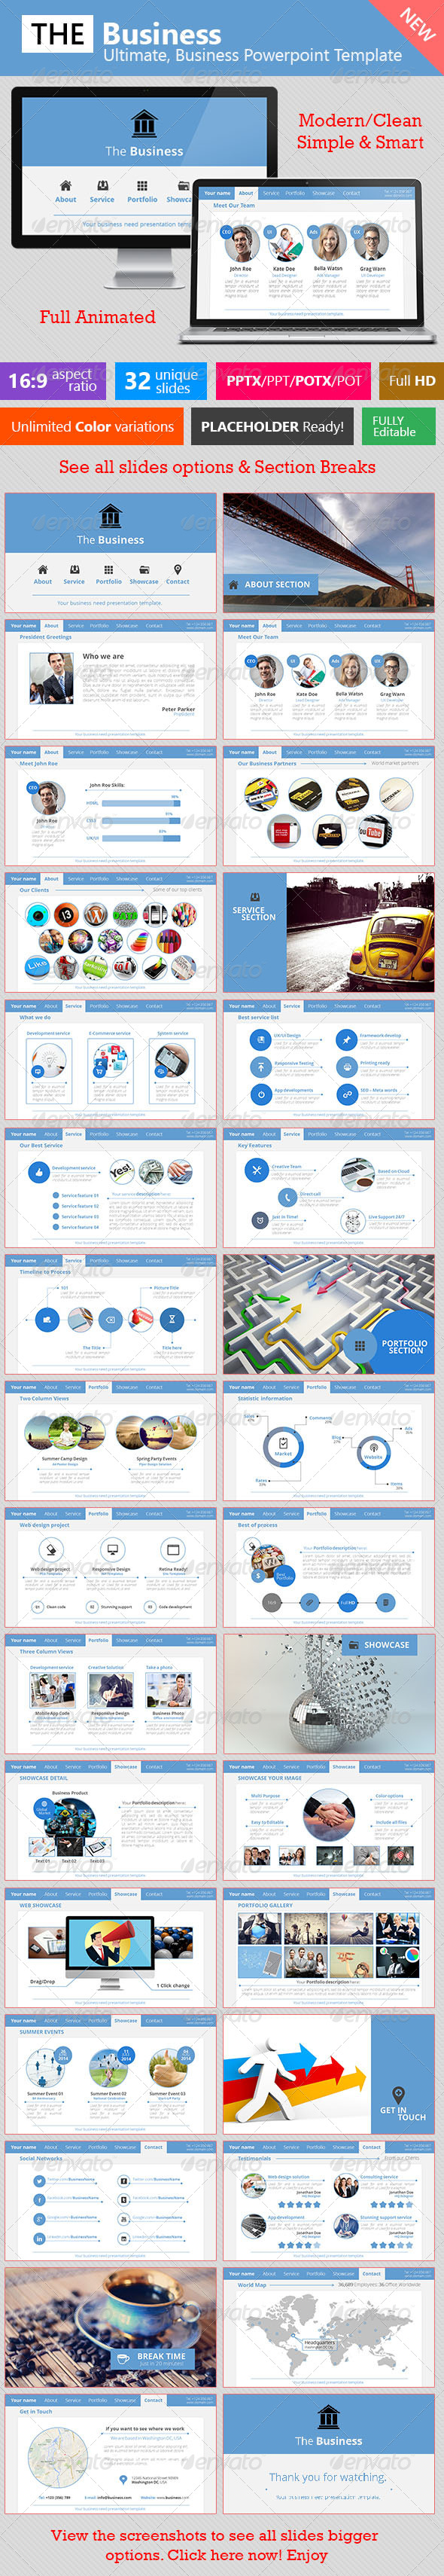 GraphicRiver The Business Ultimate Business Template 7488380